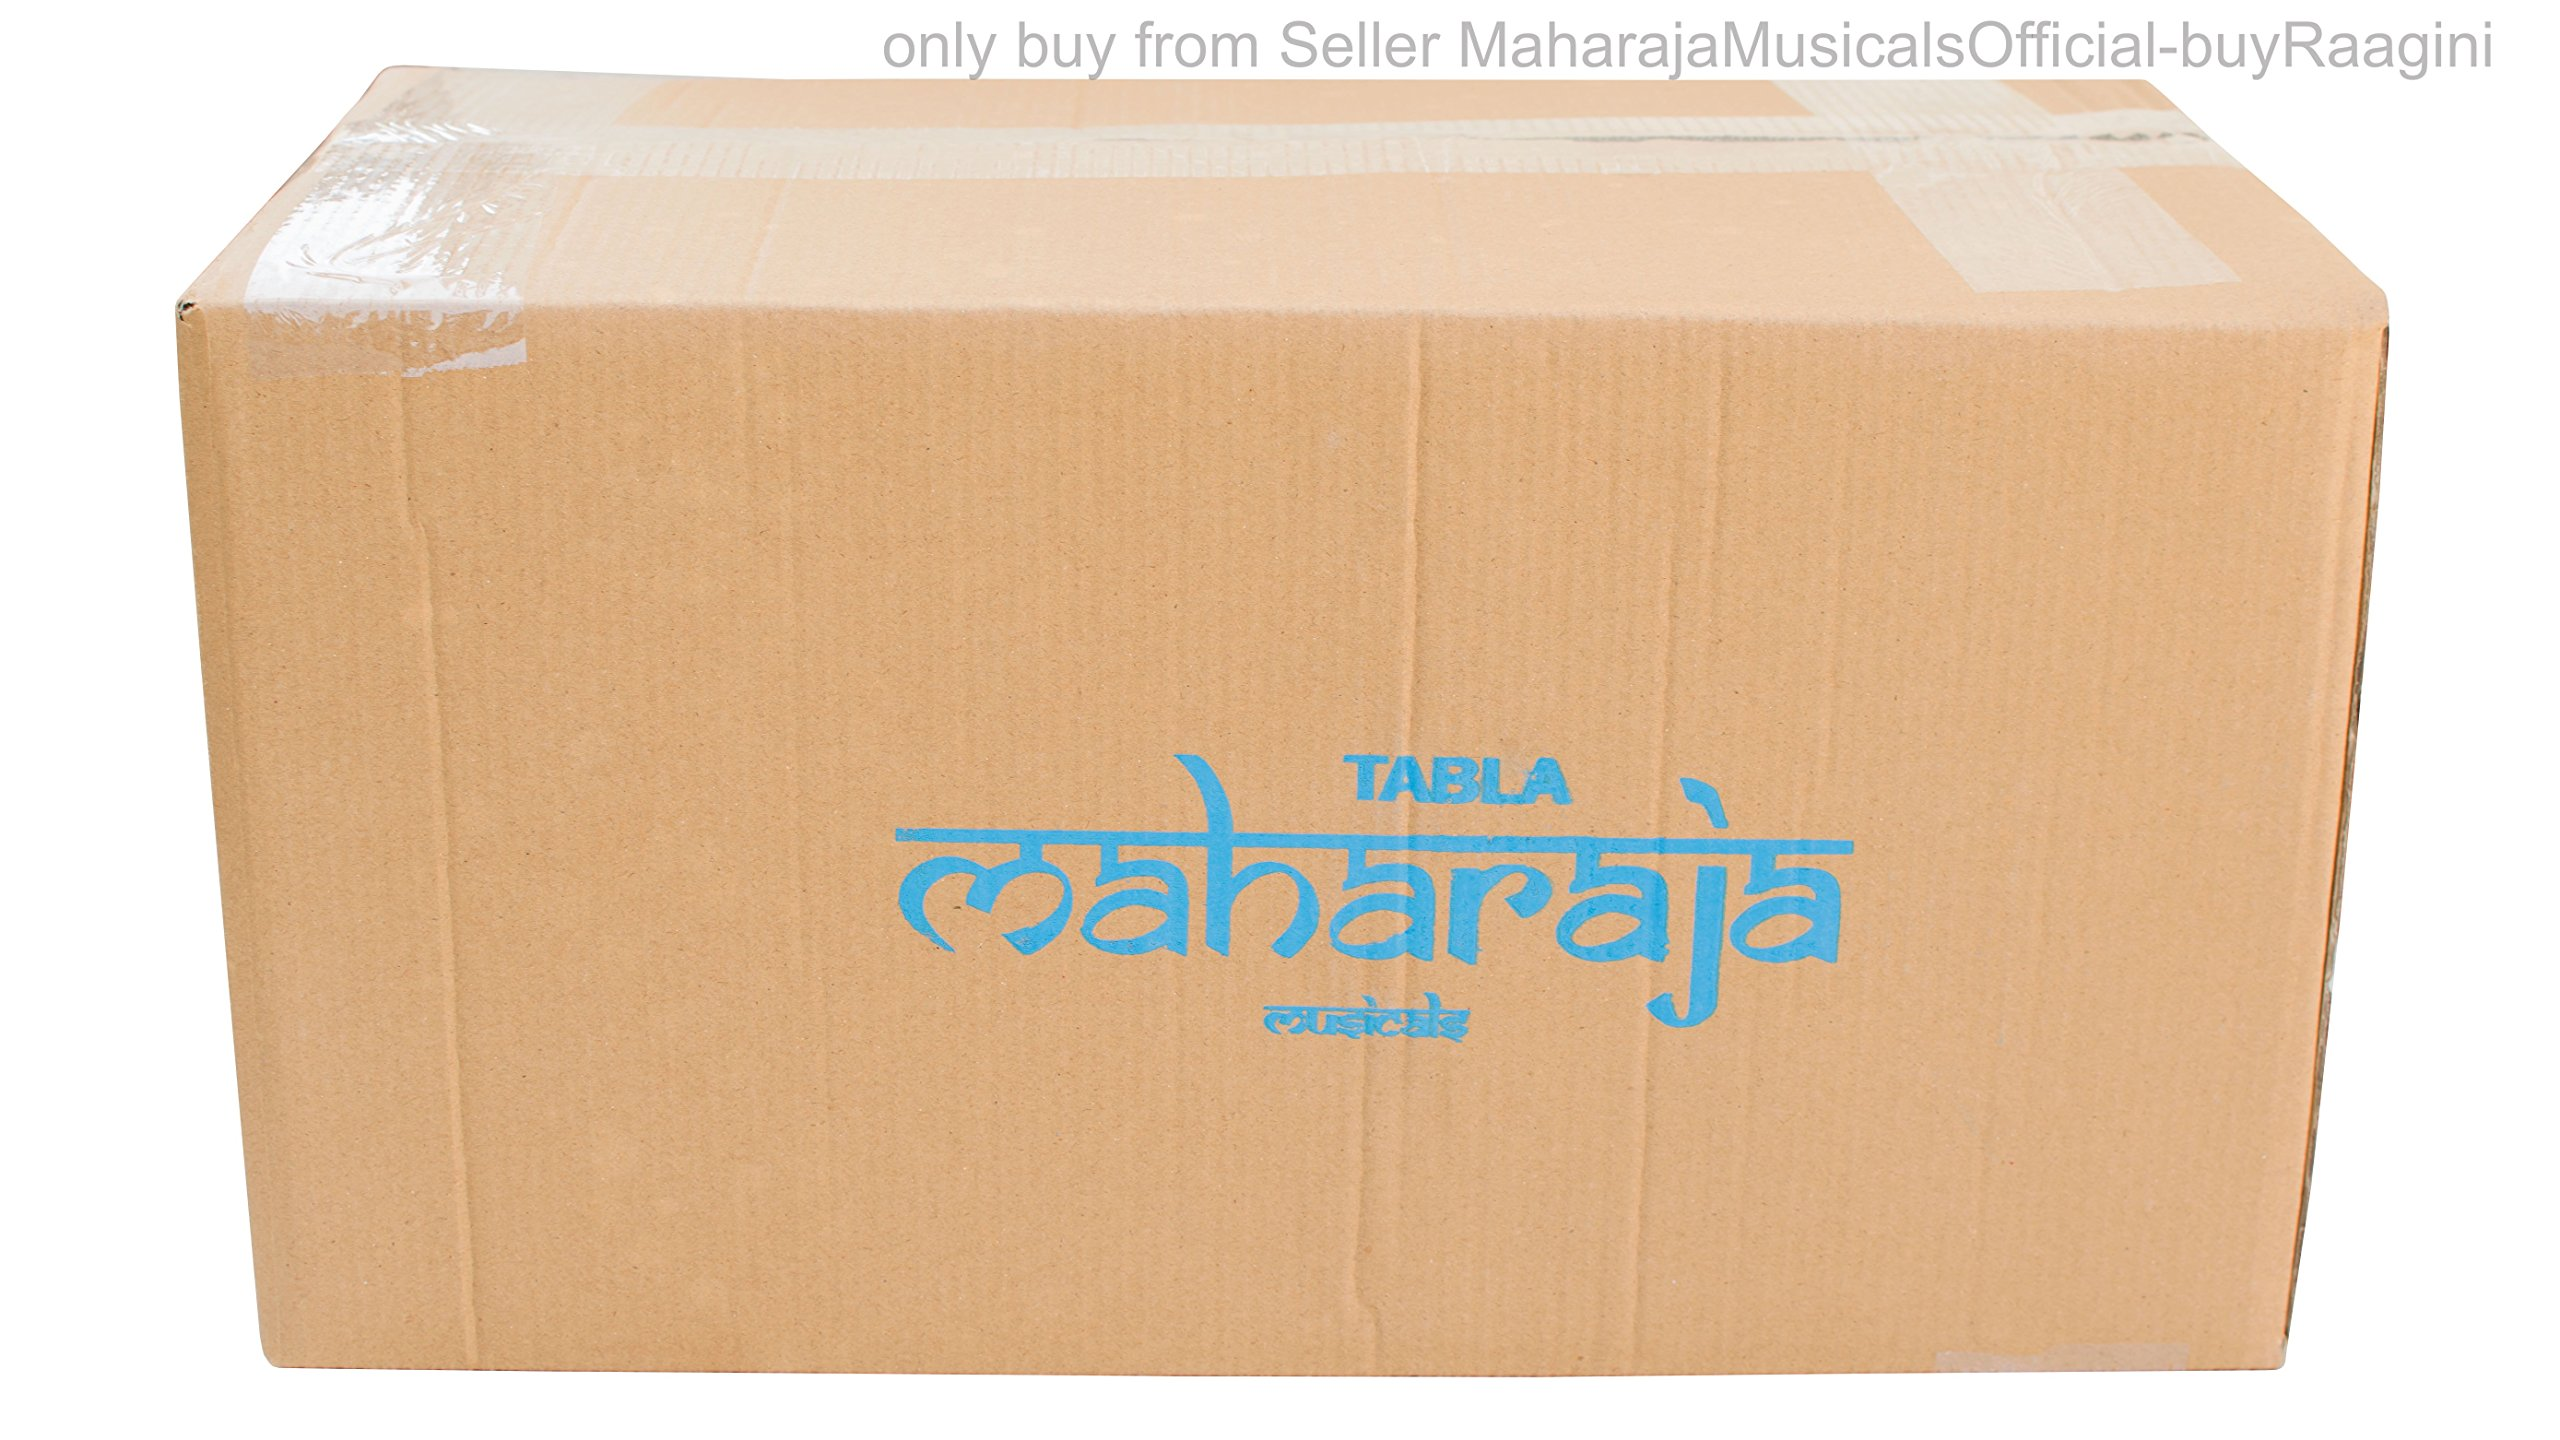 MAHARAJA Student Tabla Drum Set, Basic Tabla Set, Steel Bayan, Dayan with Book, Hammer, Cushions & Cover - Perfect Tablas for Students and Beginners on Budget (PDI-IB) Tabla Drums, Indian Hand Drums by Maharaja Musicals (Image #9)